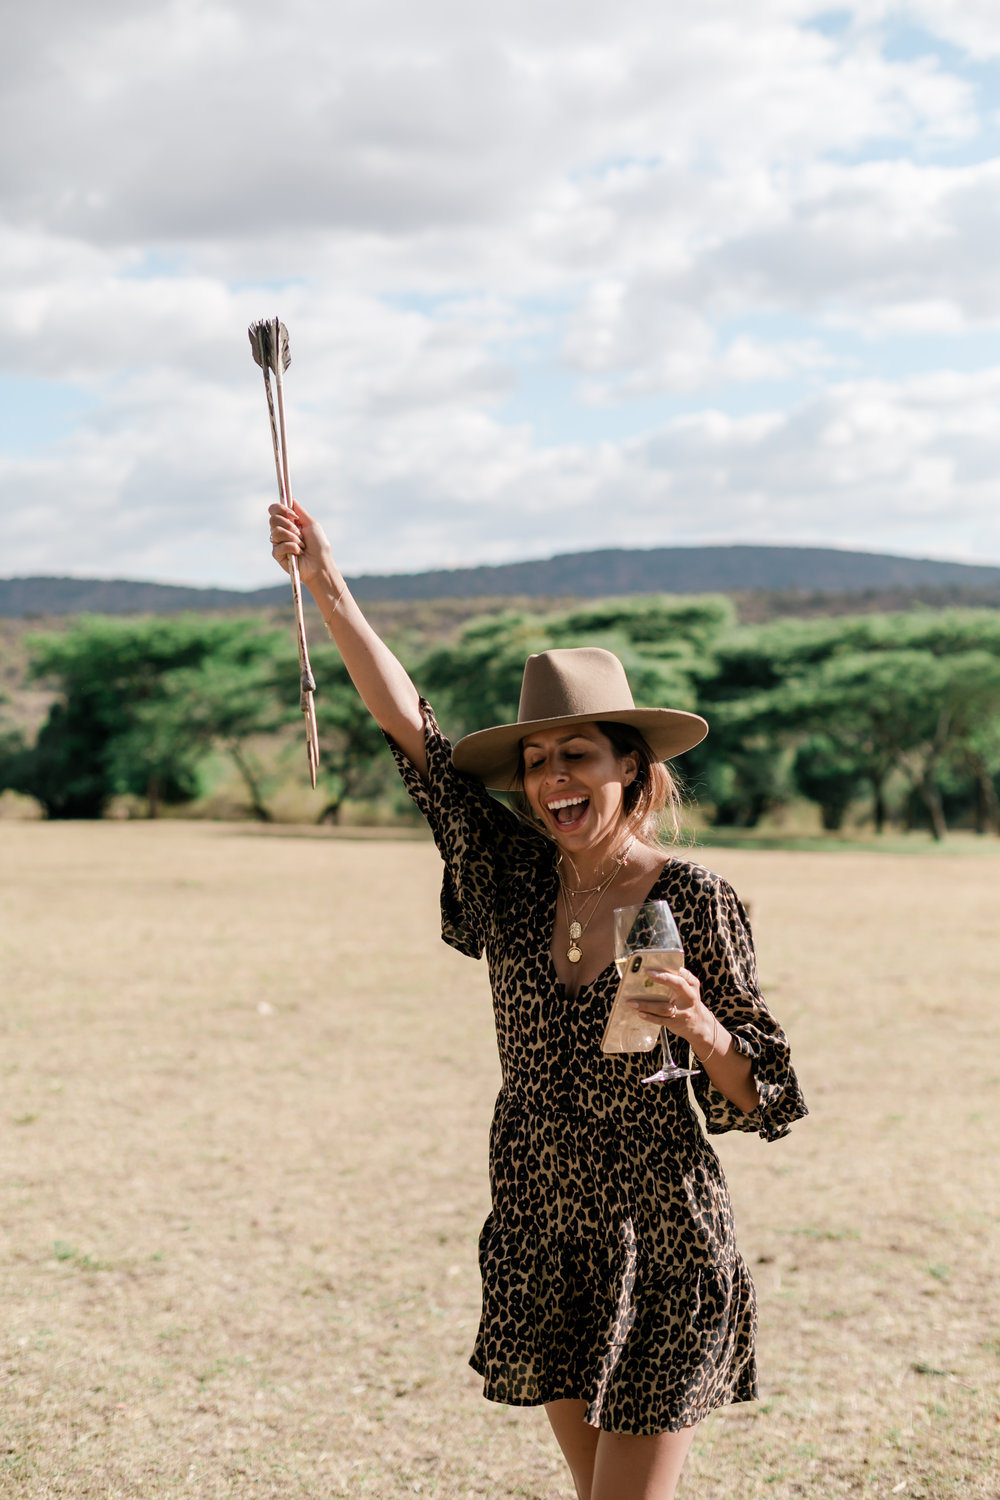 Everyday Pursuits - Safari in Kenya Ph. Valorie Darling